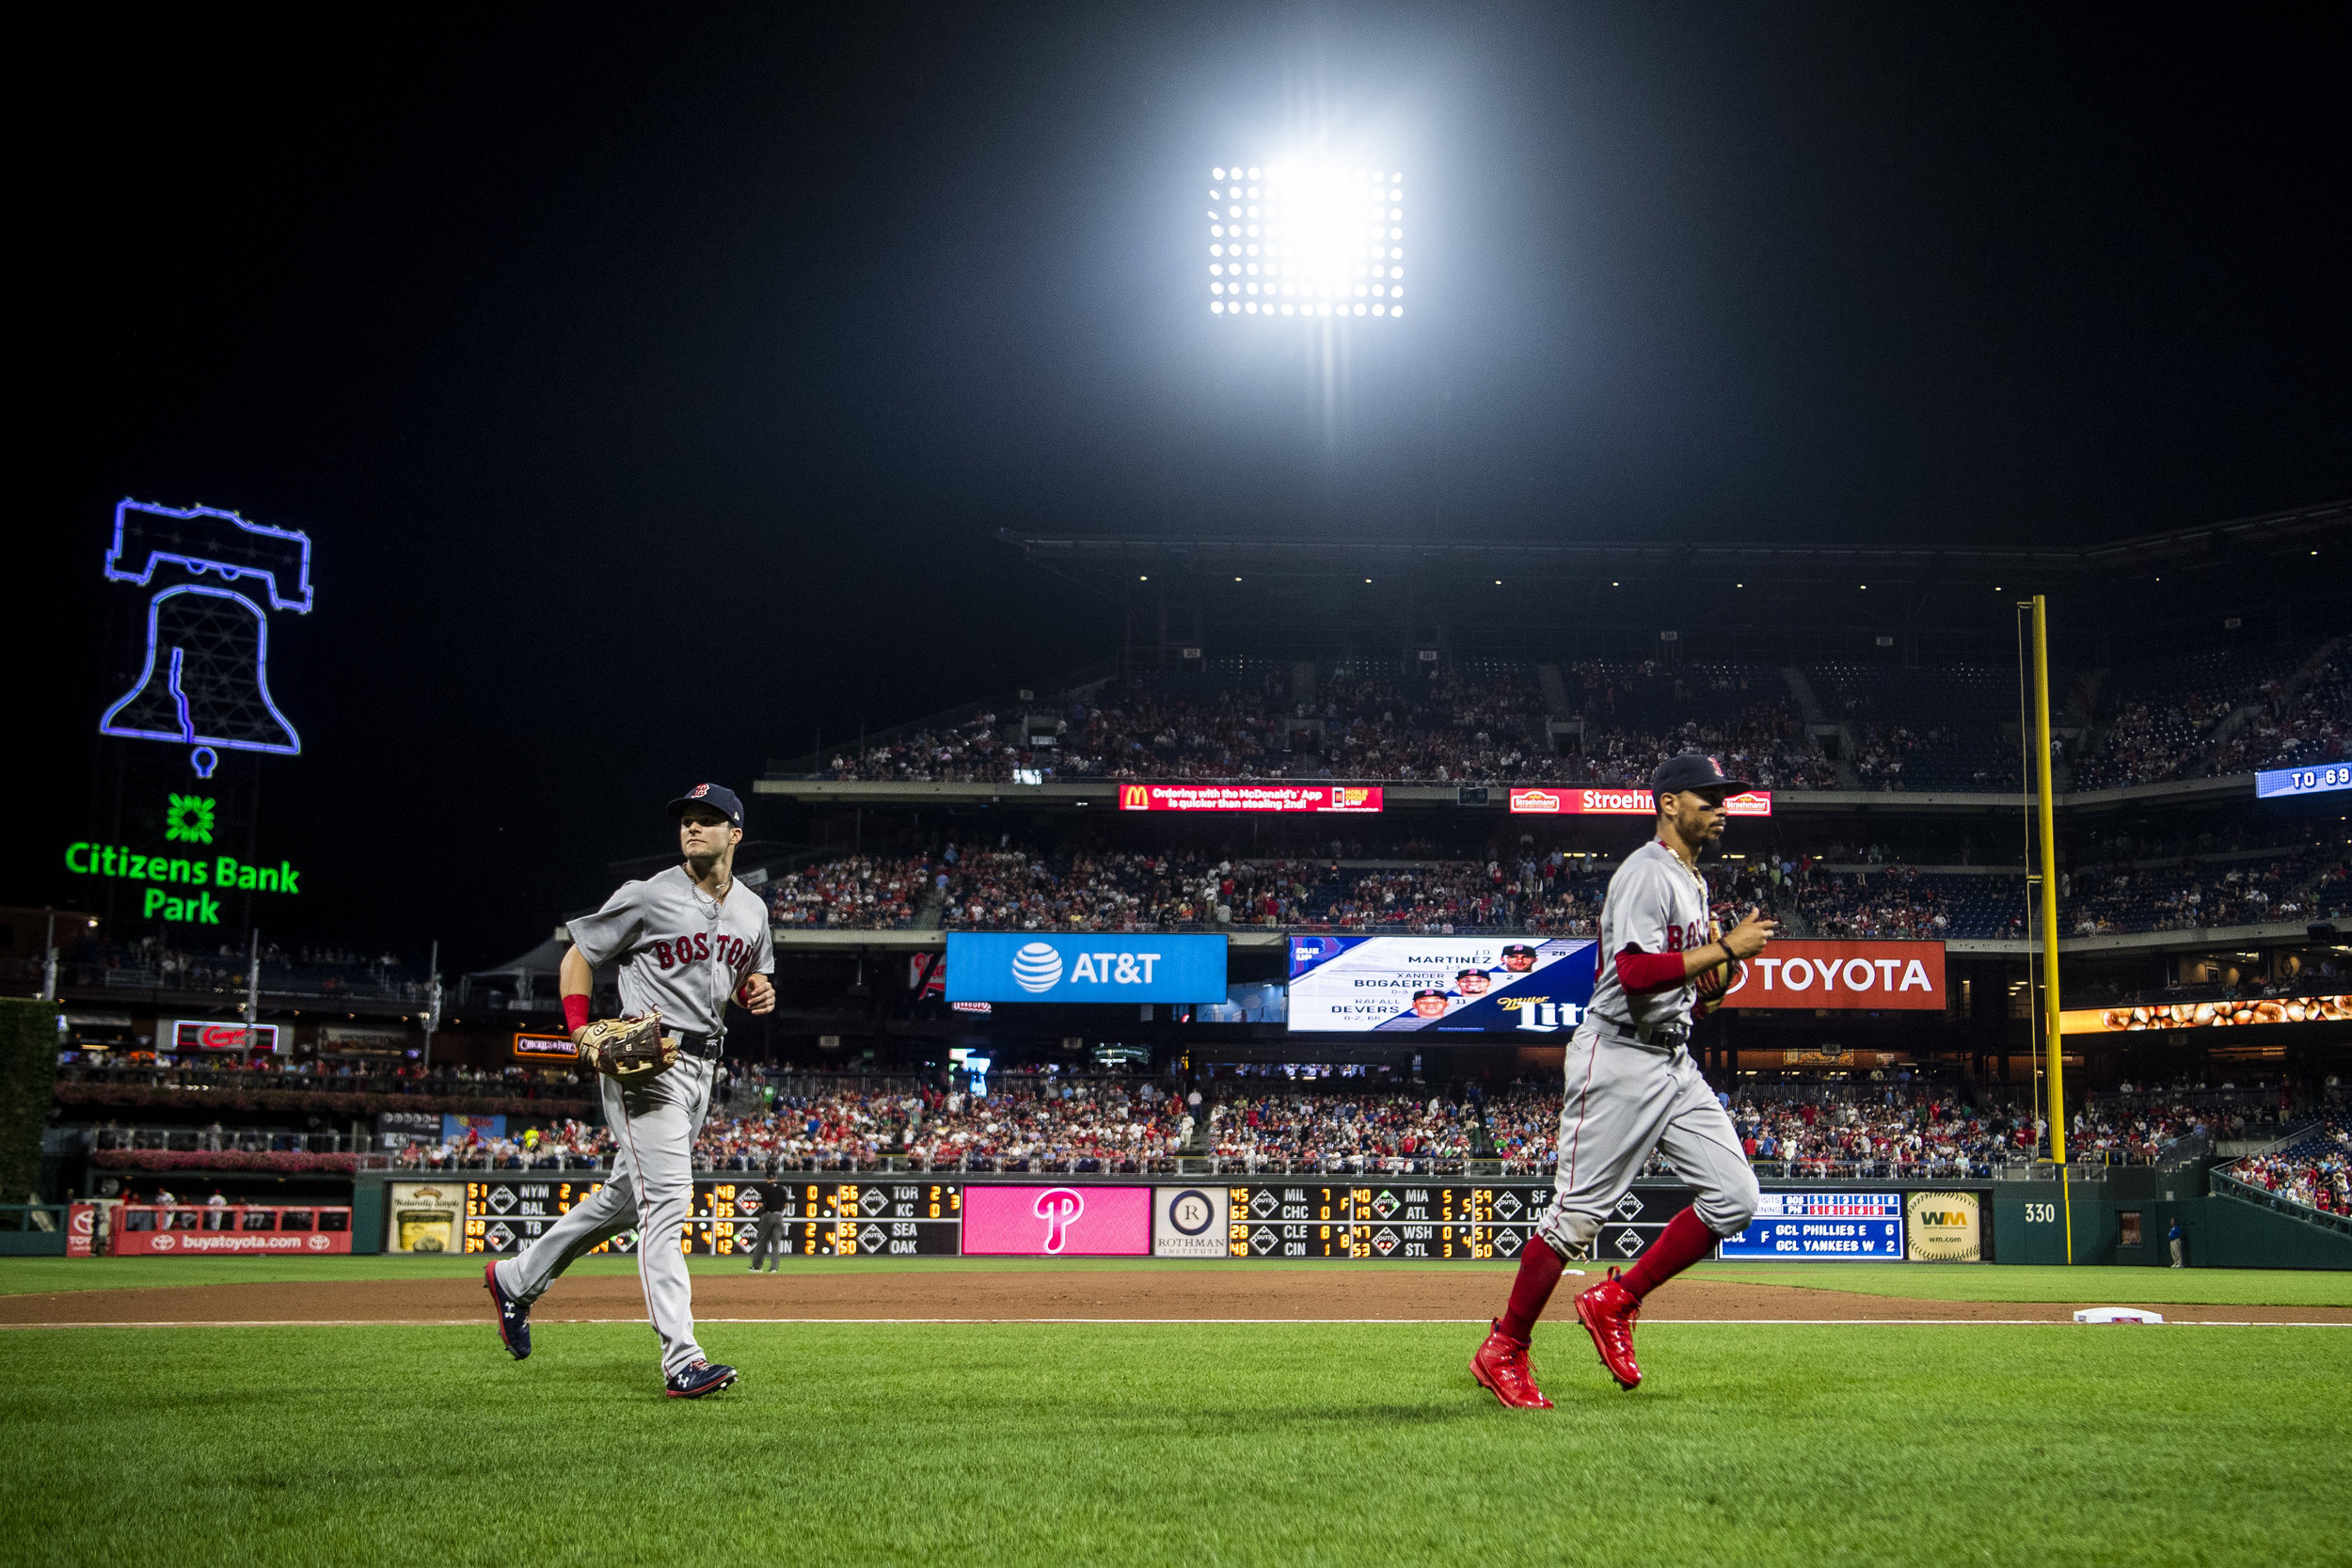 August 14, 2018, Philadelphia, PA: Boston Red Sox outfielder Mookie Betts and Boston Red Sox outfielder Andrew Benintendi makes their way in from the outfield as the Boston Red Sox face the Philadelphia Phillies at Citizen Bank Park in Philadelphia, Pennsylvania on Tuesday, August 14, 2018. (Photo by Matthew Thomas/Boston Red Sox)